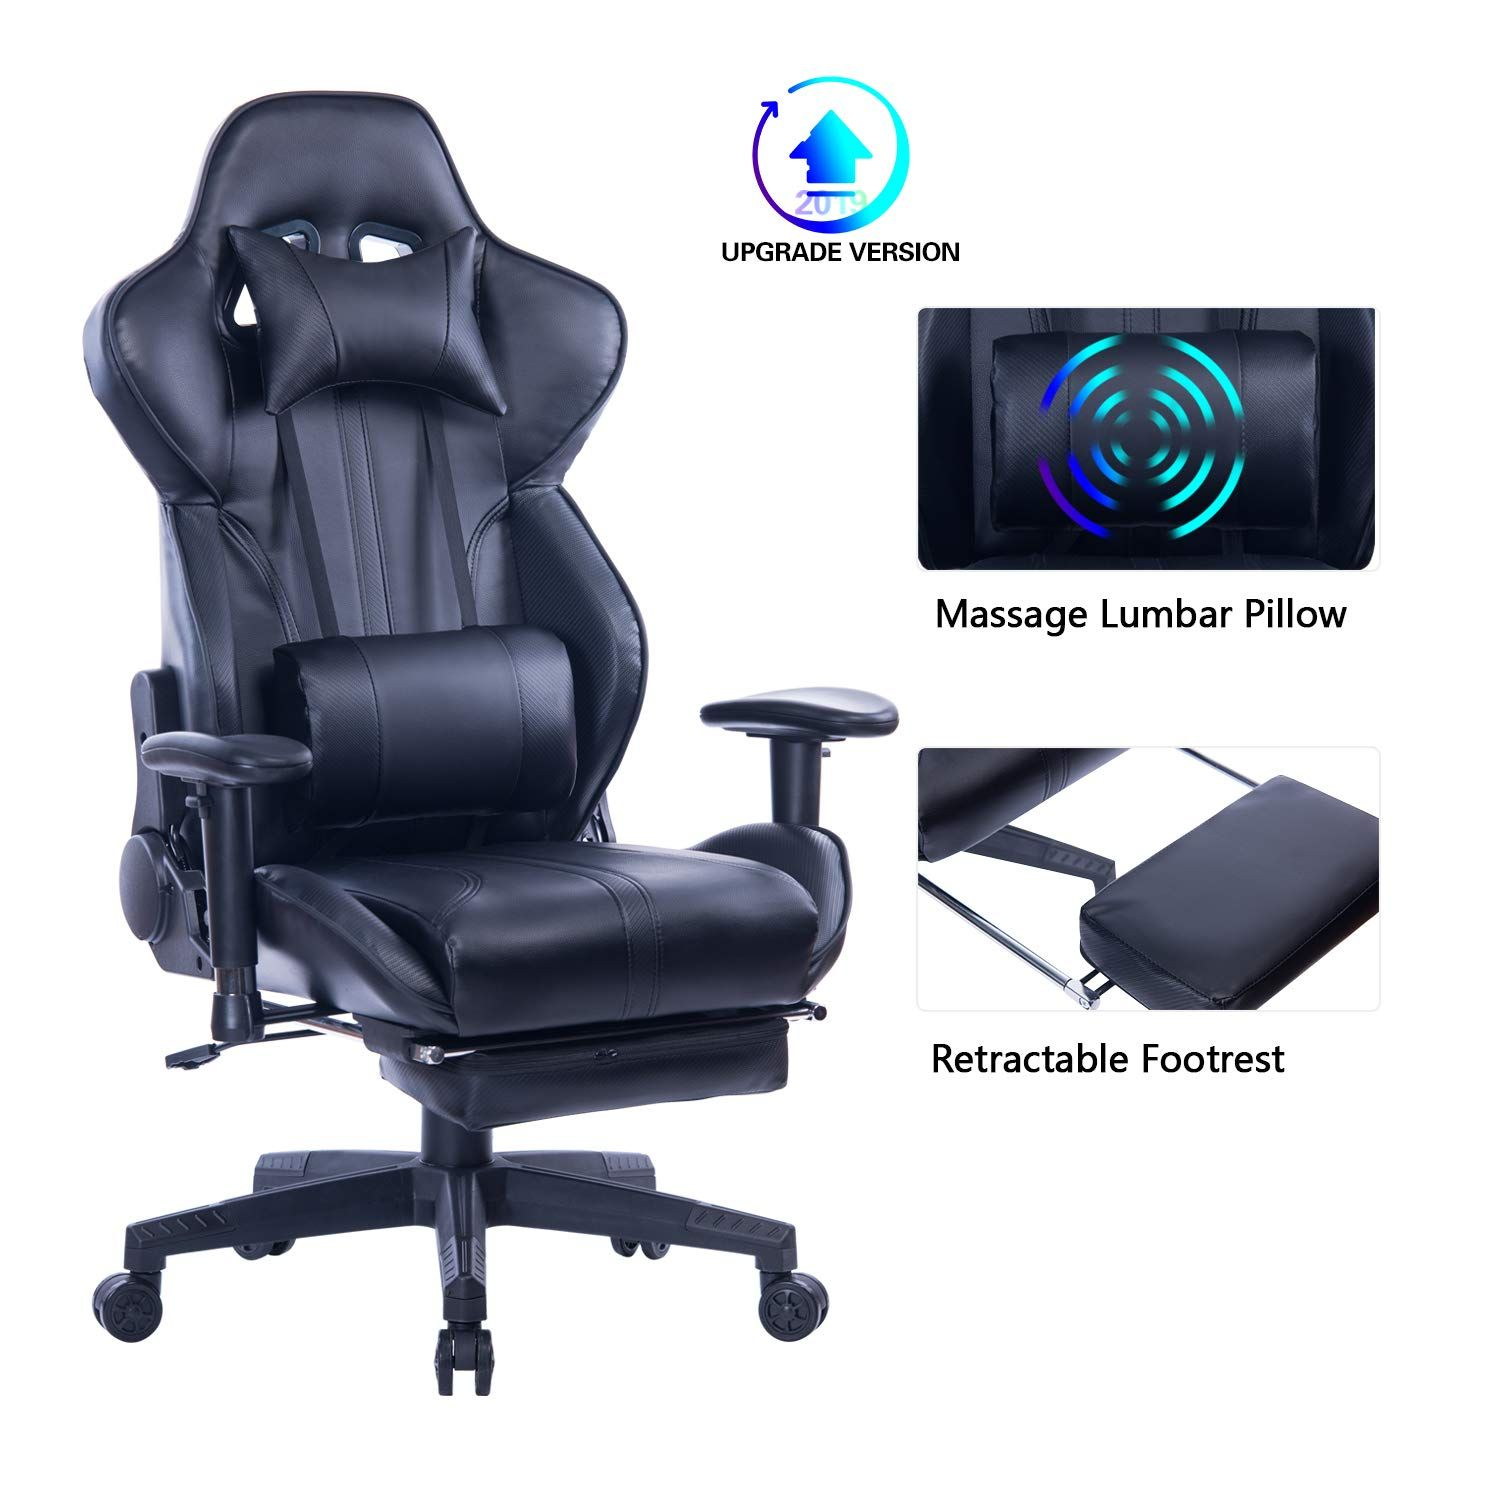 Blue whale gaming chair with adjustable massage lumbar